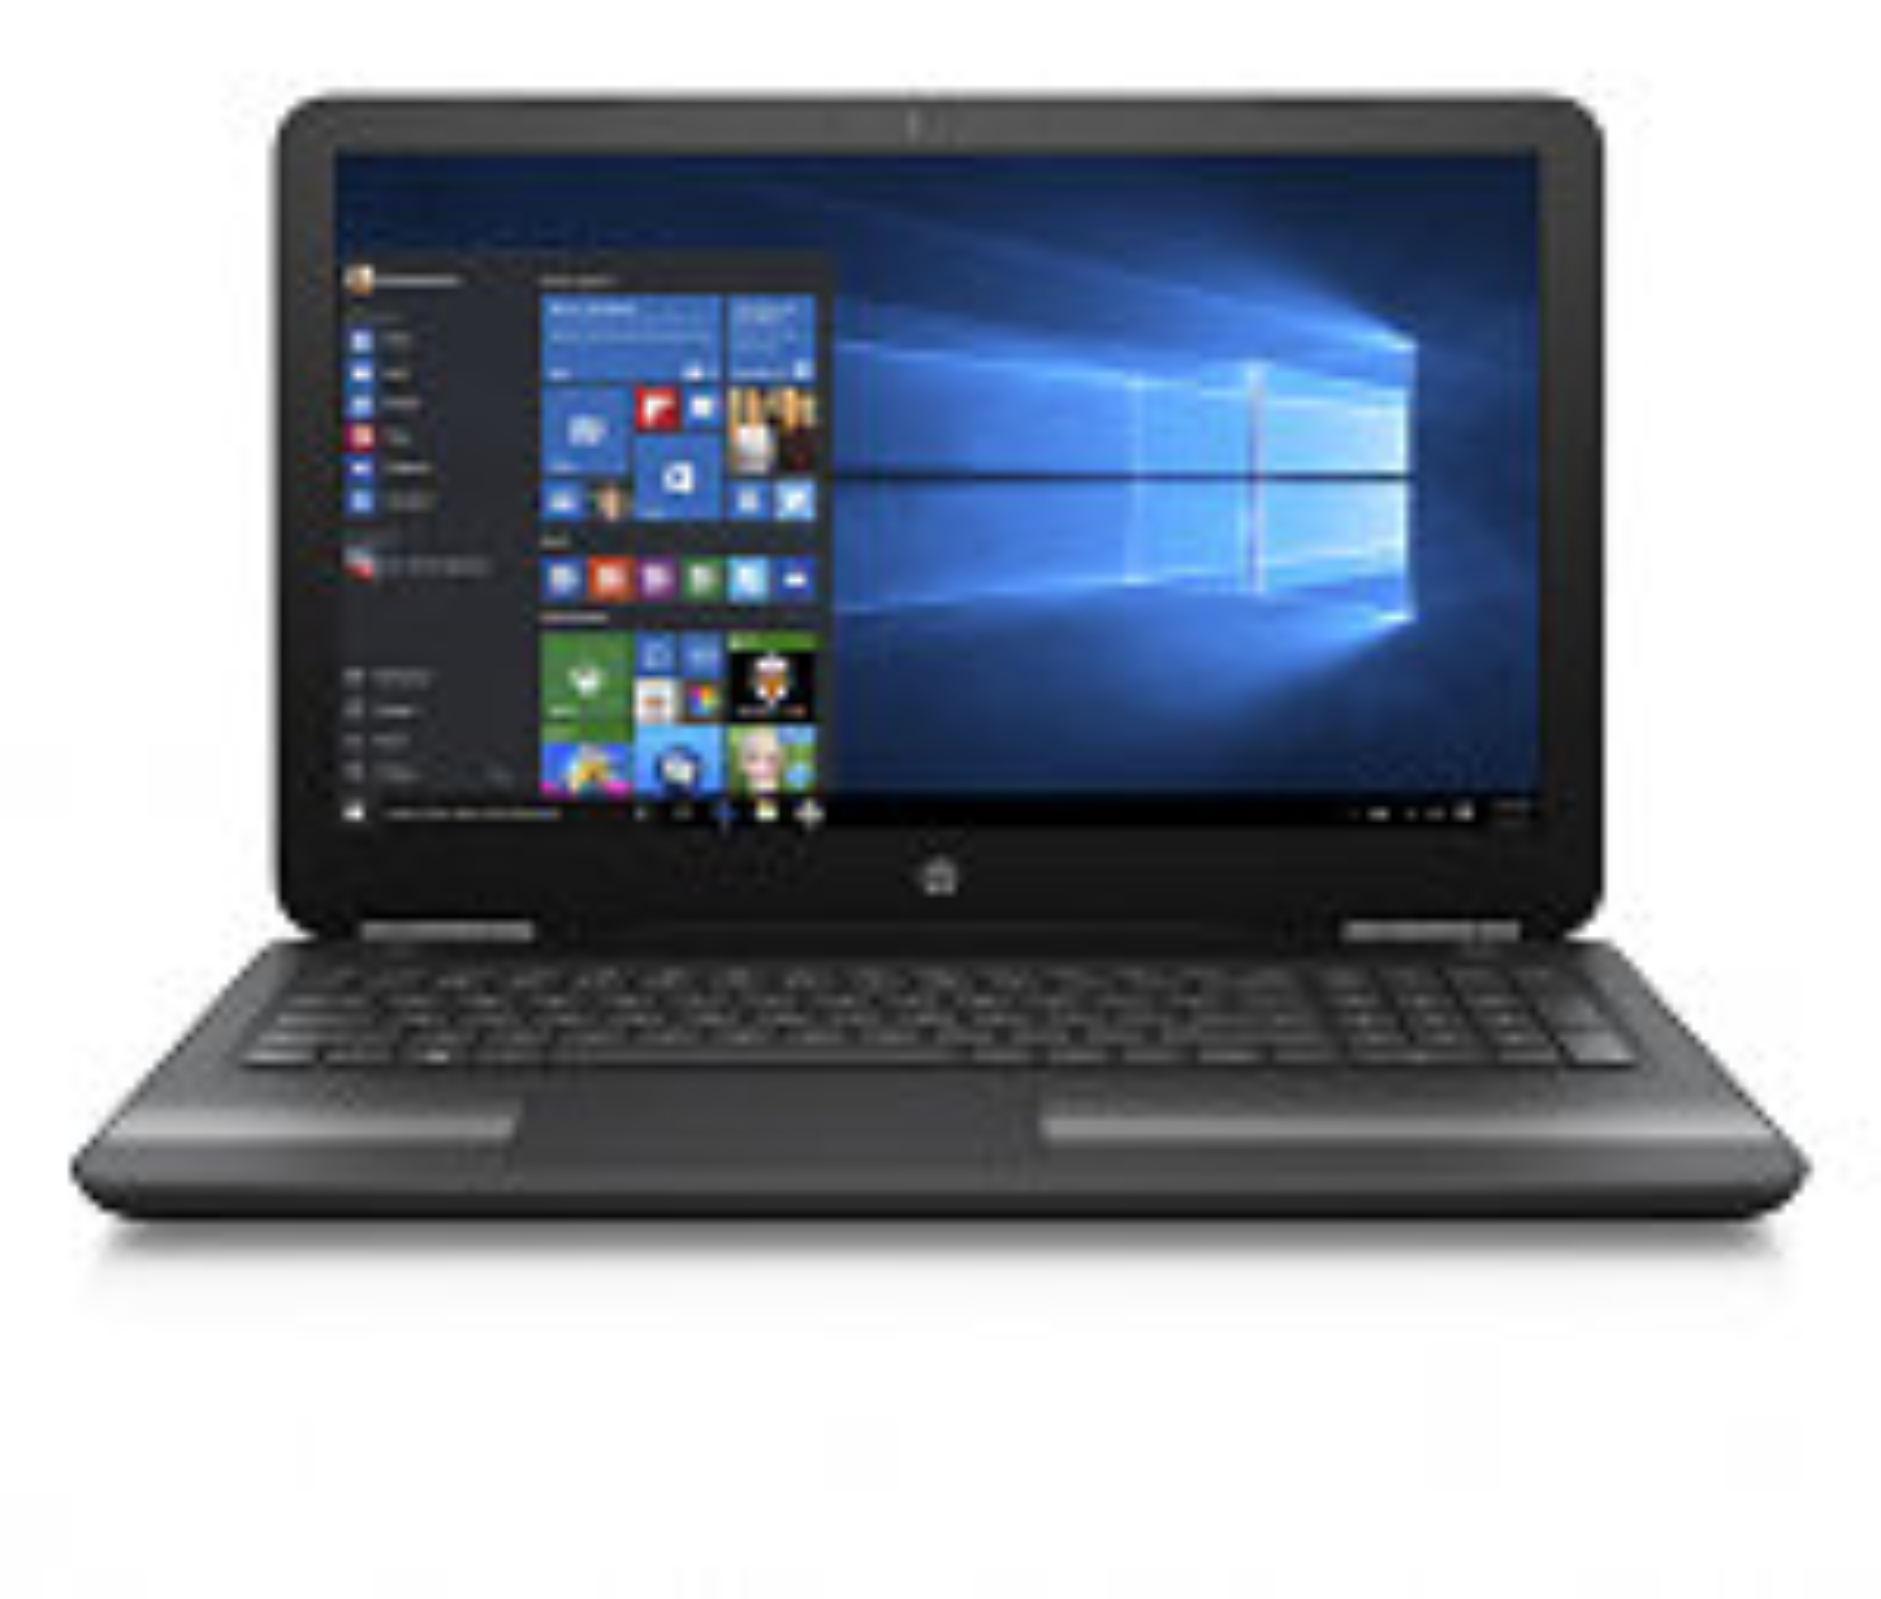 HP Pavilion 15-au008nc/Intel i5-6200U/8GB/128GB SSD M.2 + 1TB/DVDRW/GeForce 940M 2GB/15,6 FHD/Win 10/černá